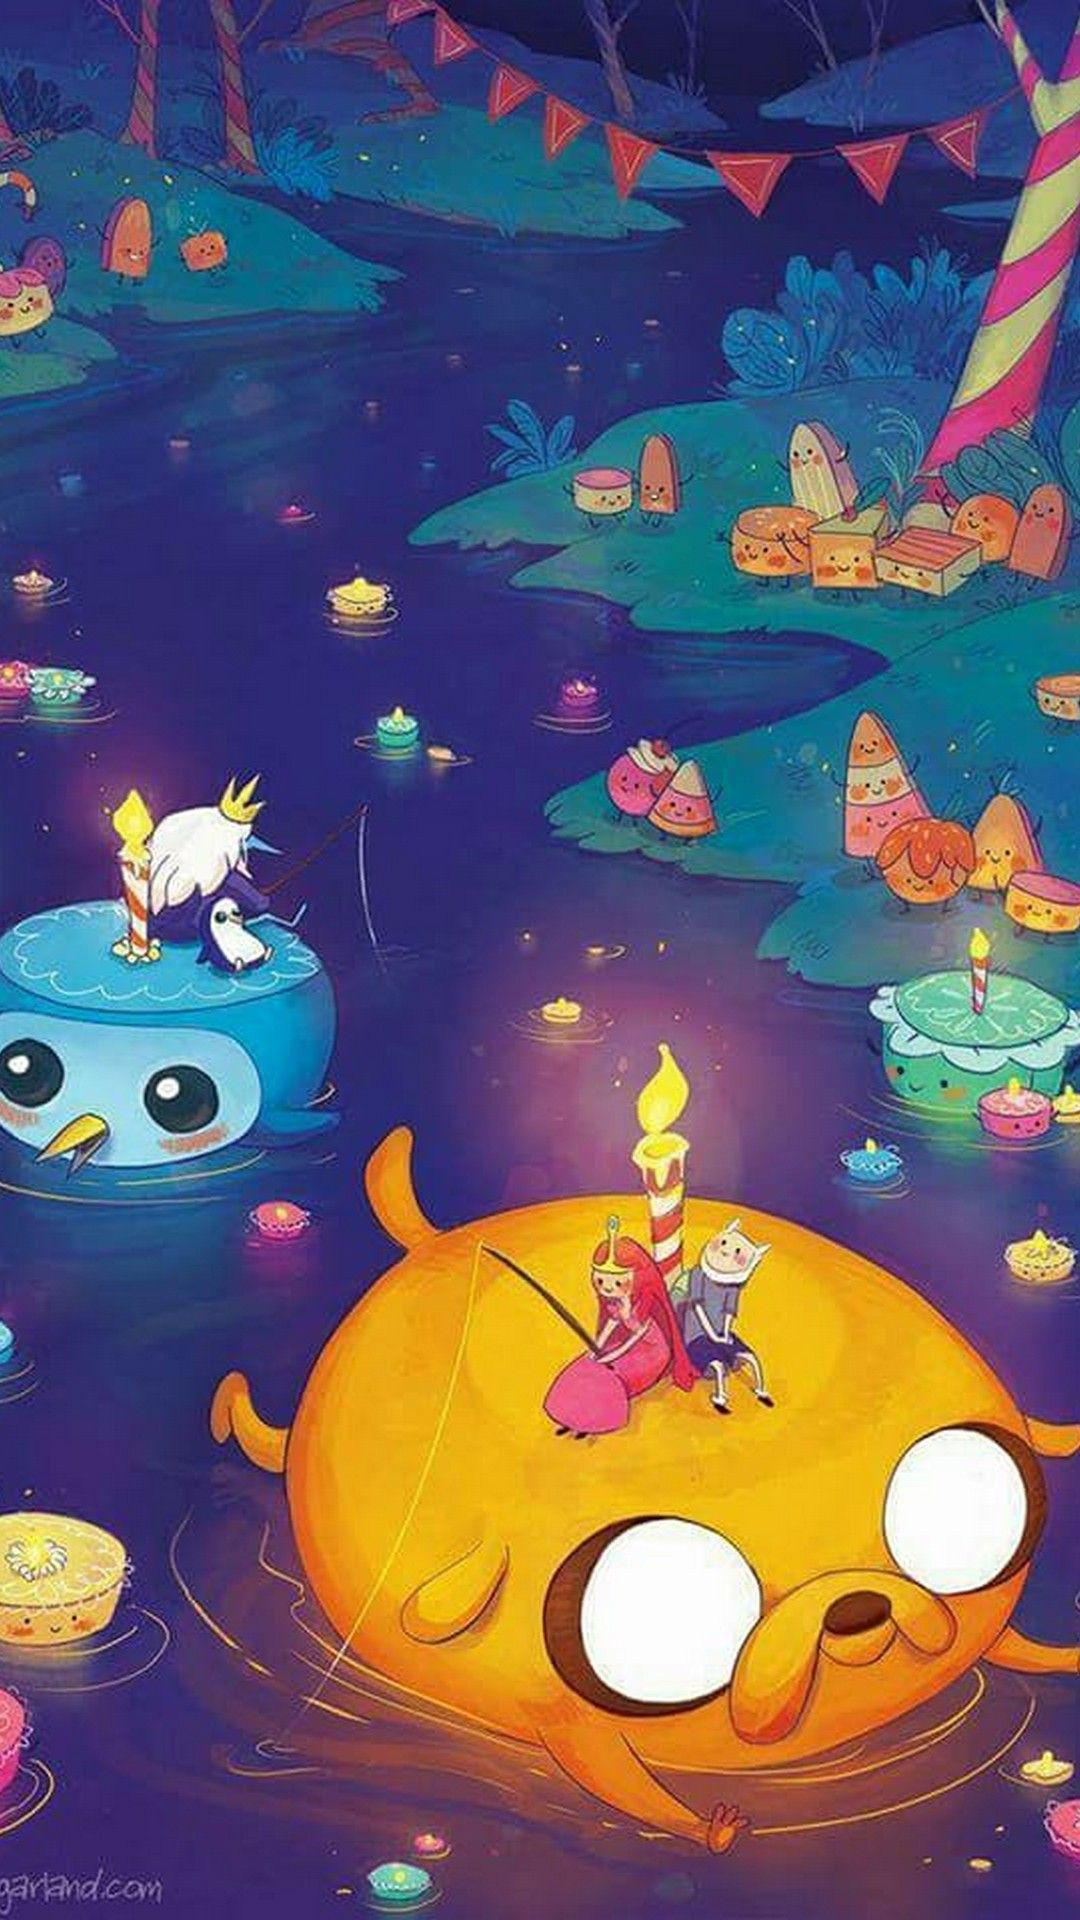 Adventure Time Wallpaper Iphone Hd Best Wallpaper Hd Adventure Time Adventure Time Parties Adventure Time Wallpaper